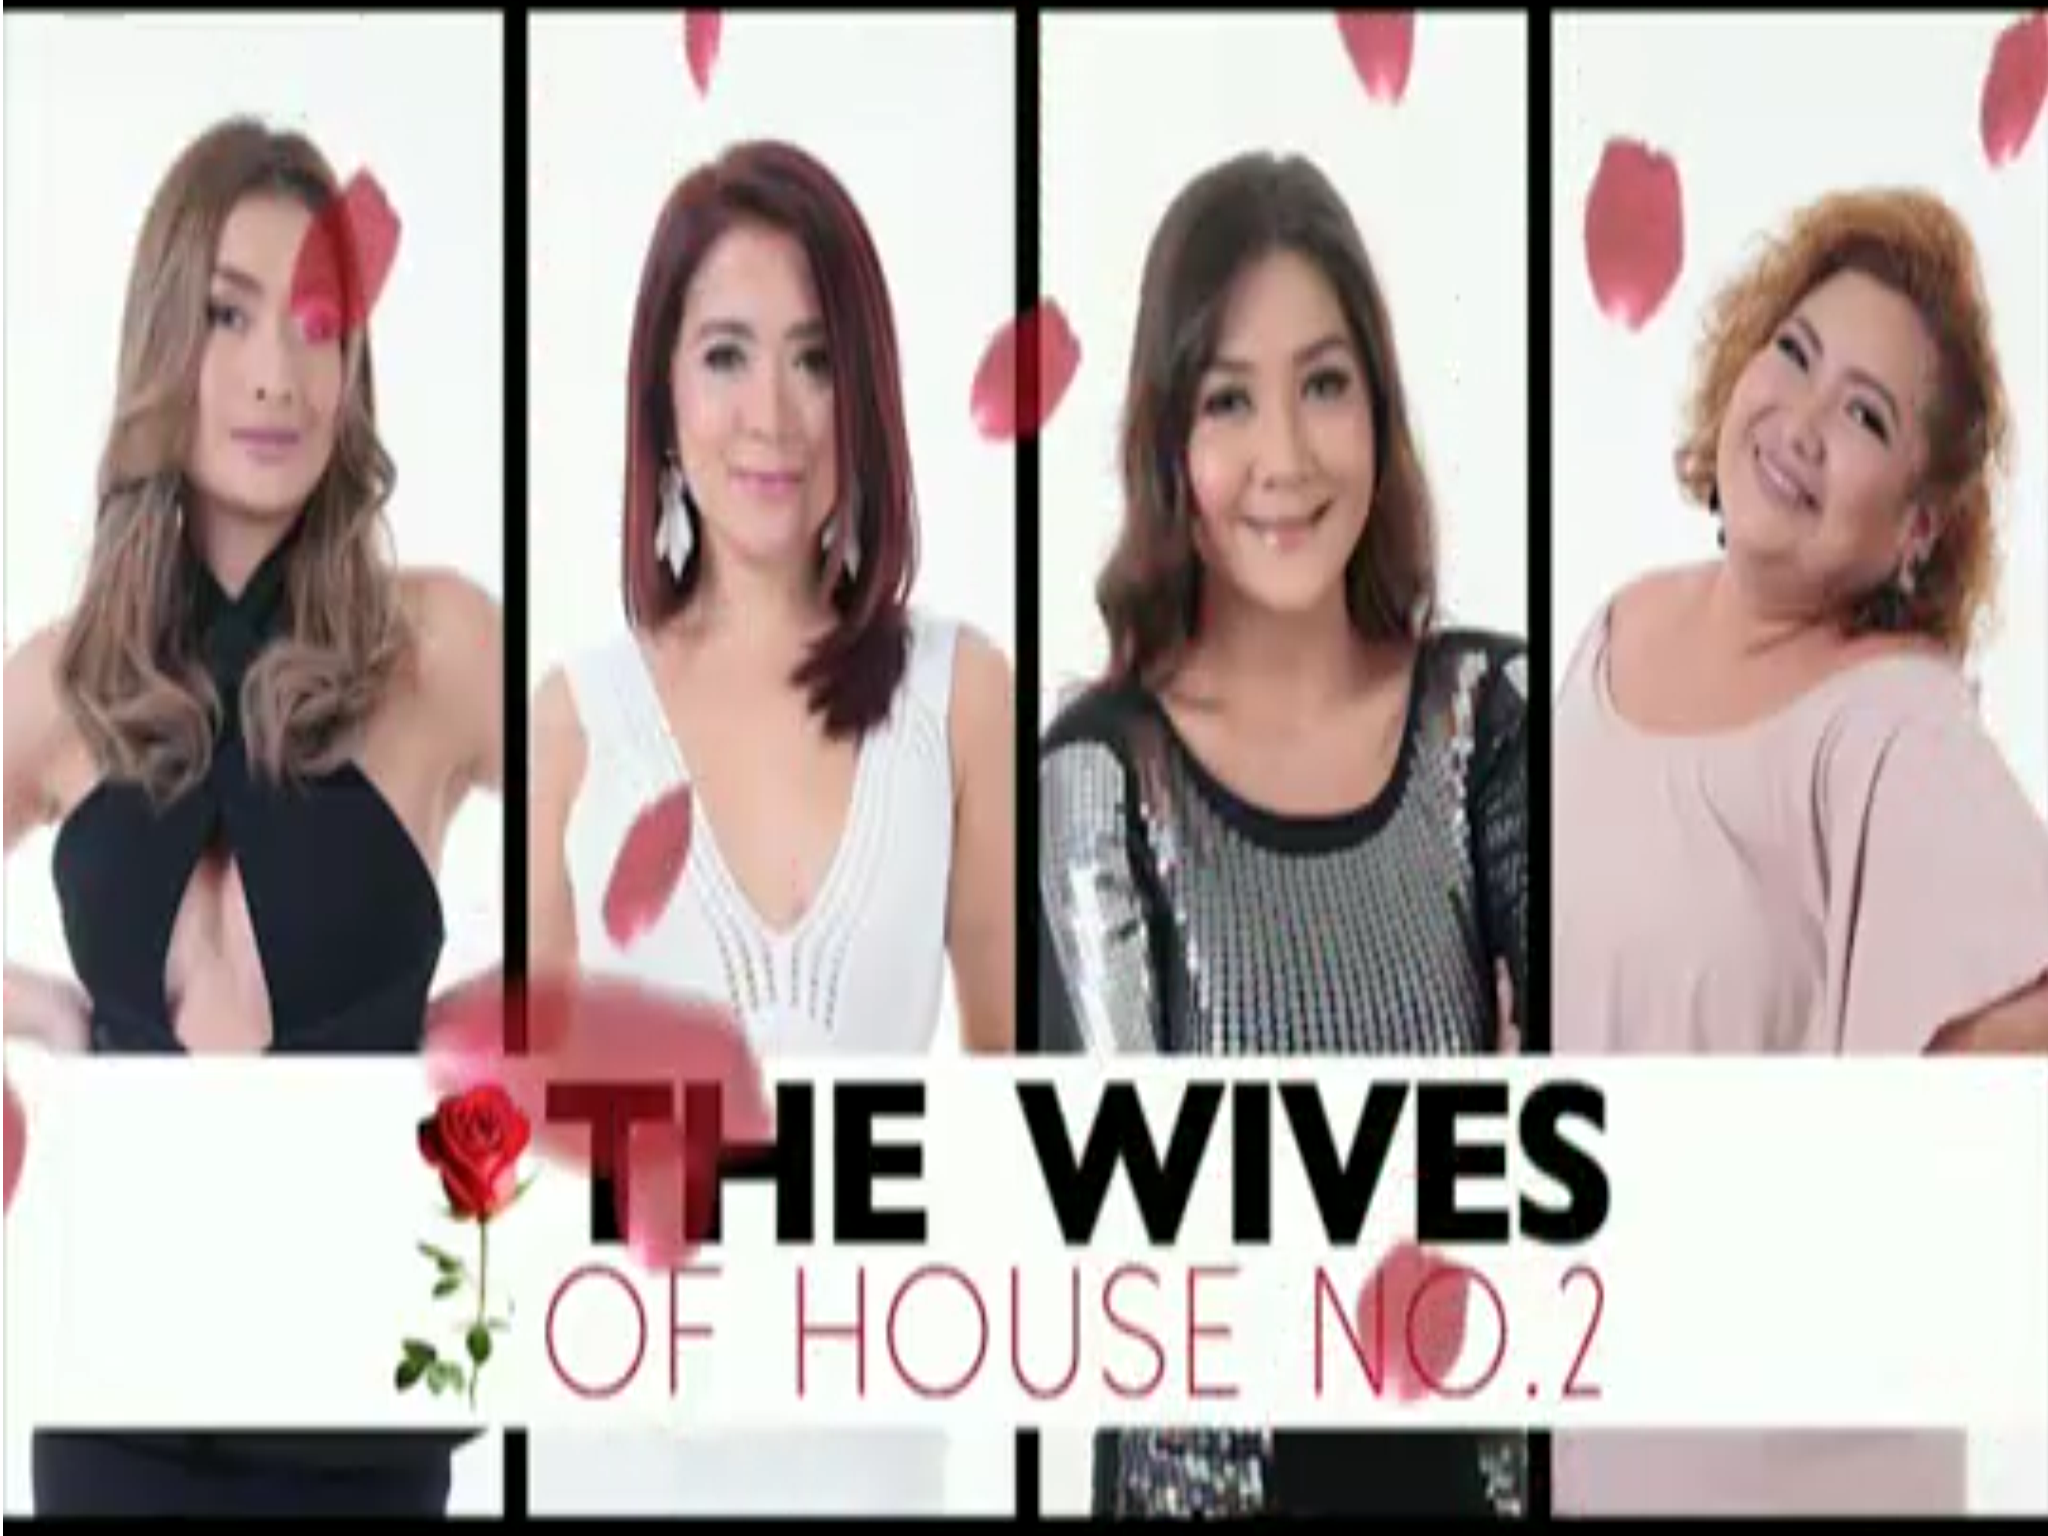 The Wives Of the House No. 2